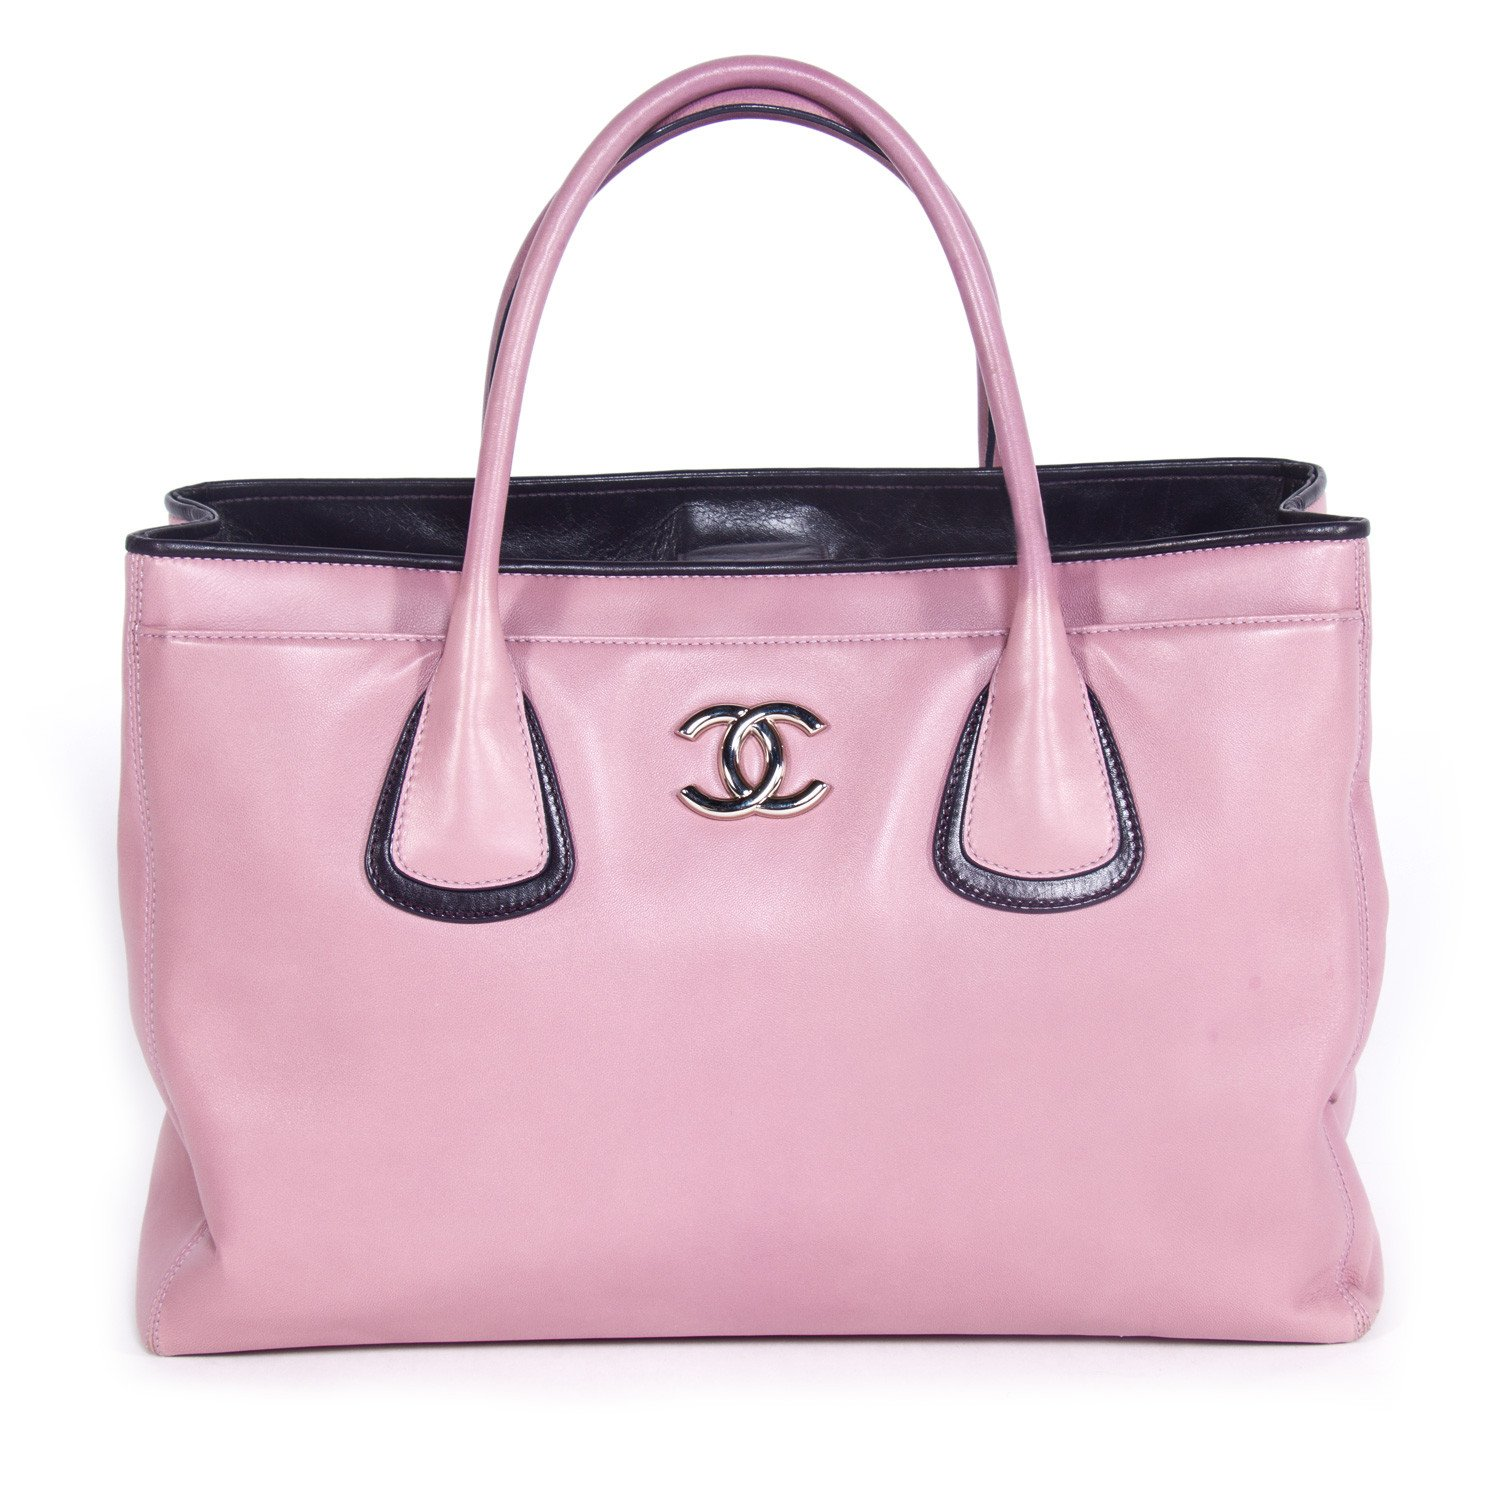 04d68abd332c My-luxury-Bargain-CHANEL-PINK-LEATHER-LARGE-CERF-EXECUTIVE-TOTE-BAG-112.jpg